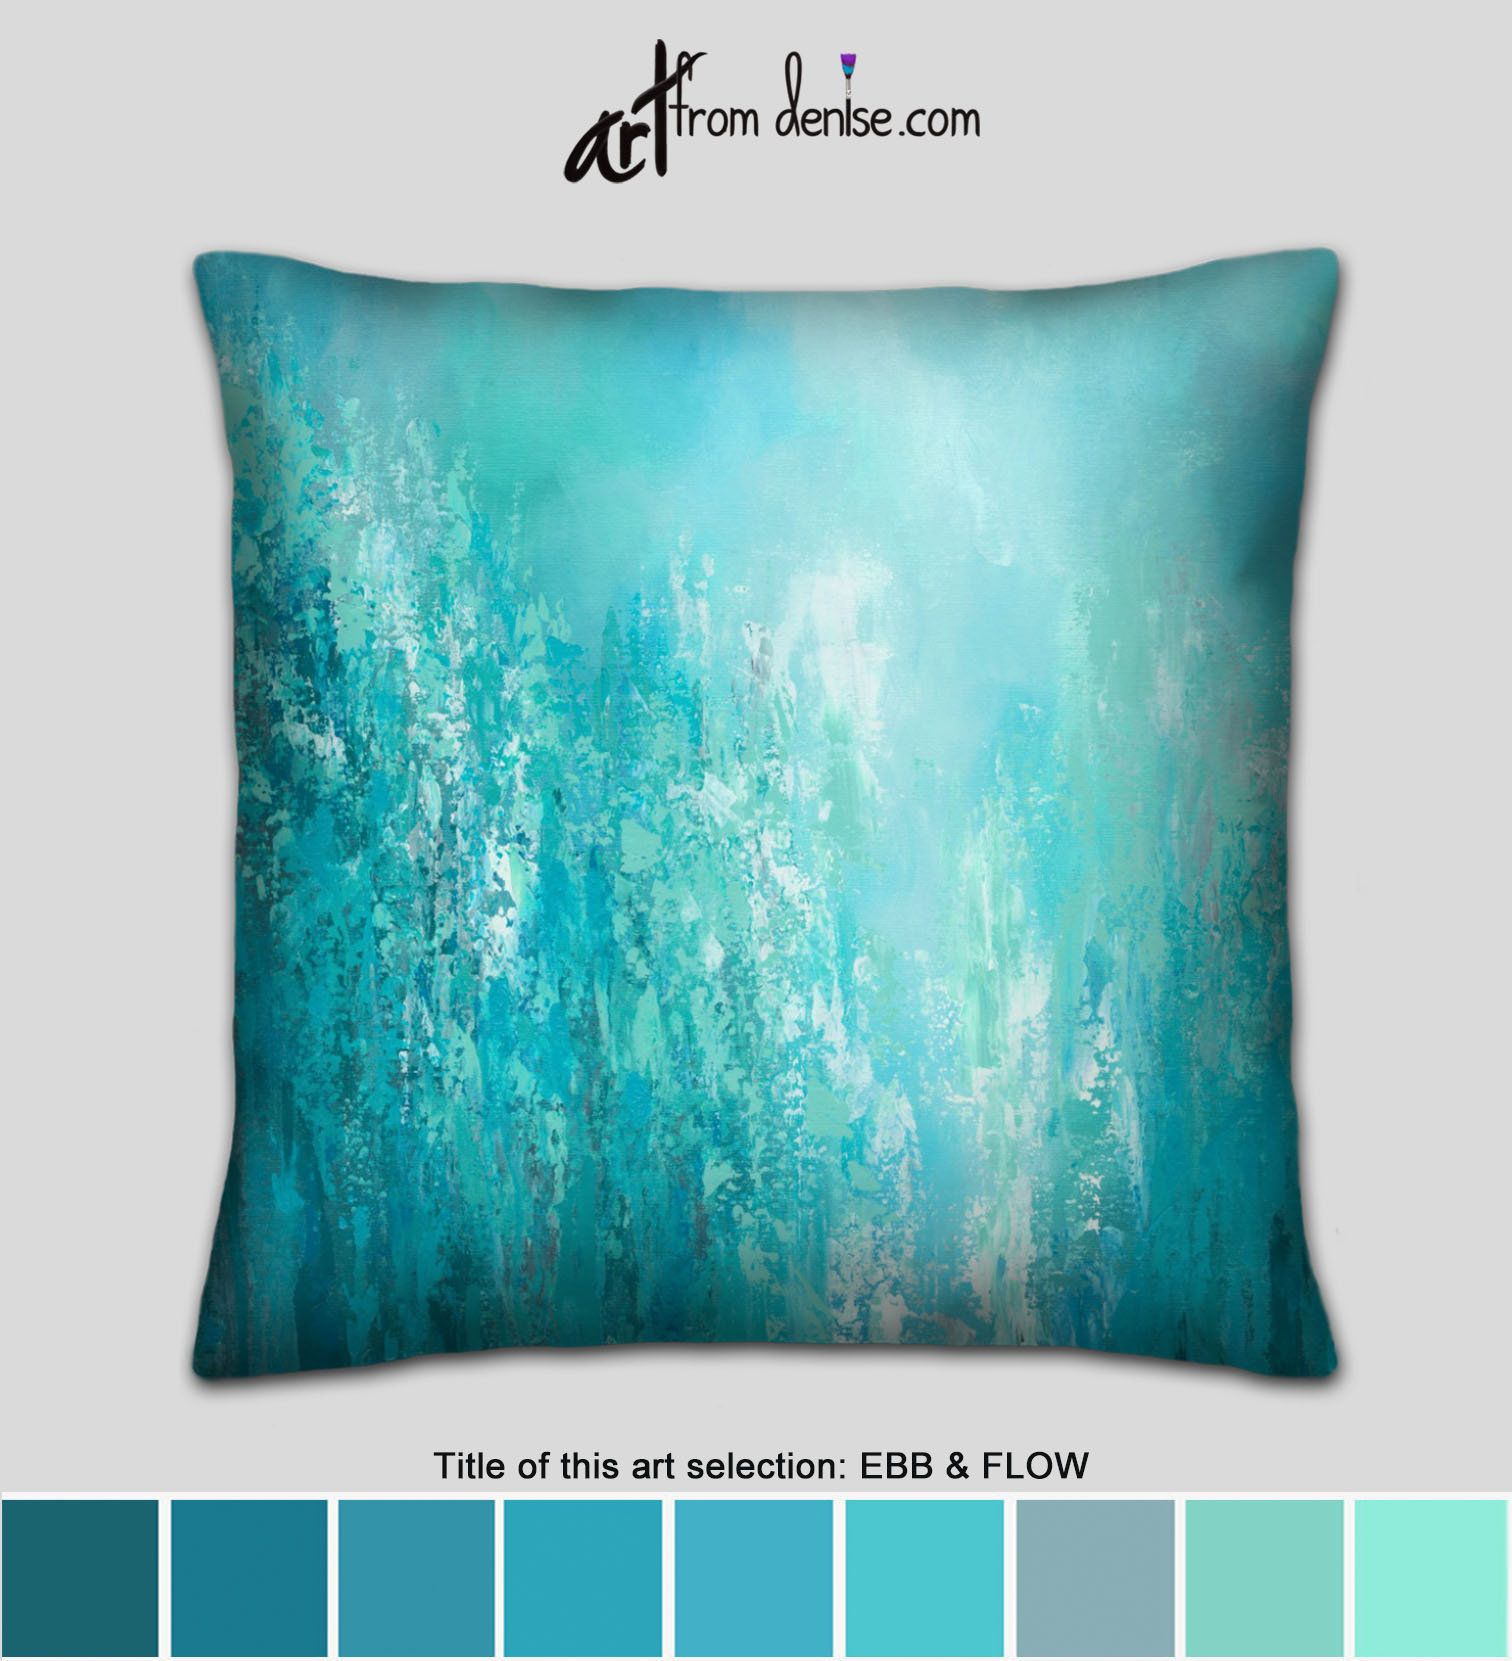 Turquoise Gray Teal Throw Pillows Or Decorative Accent Etsy Teal Throw Pillows Couch Pillow Sets Cushions On Sofa